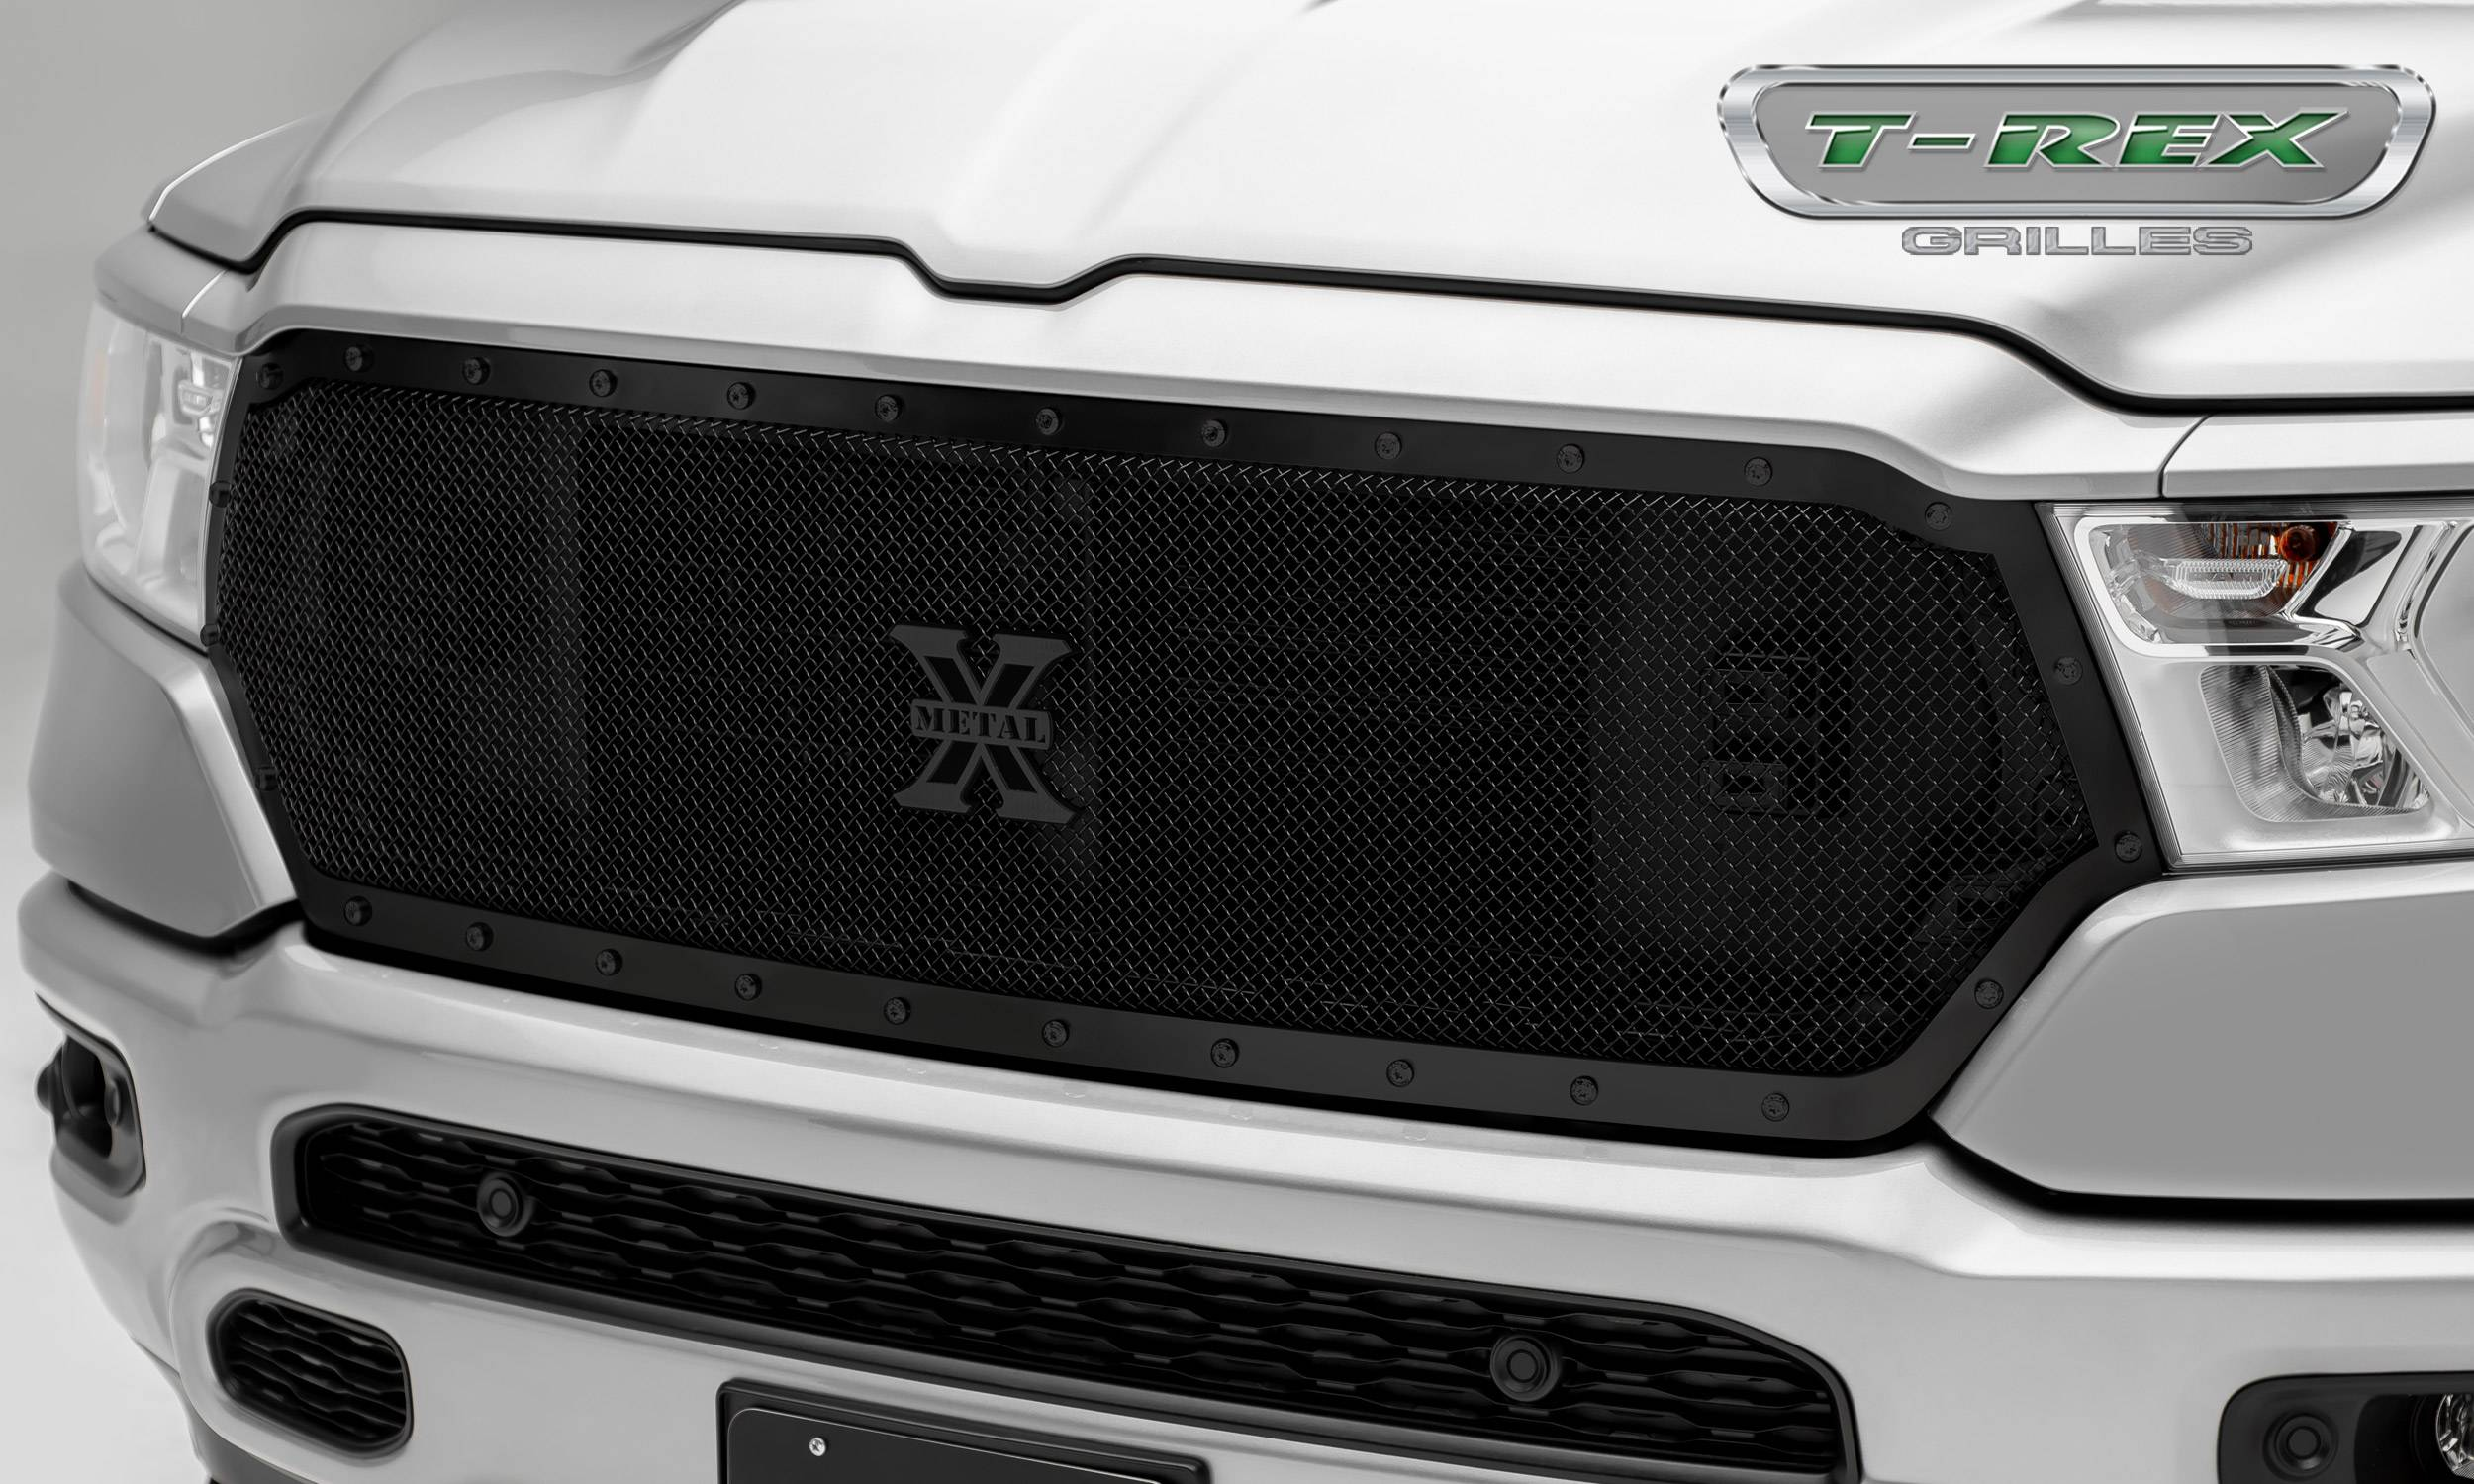 T-REX Grilles - RAM 1500 - Stealth X-Metal Series - Main Grille Replacement w/ Formed Mesh & Black Studs - Black Powder Coat Finish - Pt # 6714651-BR